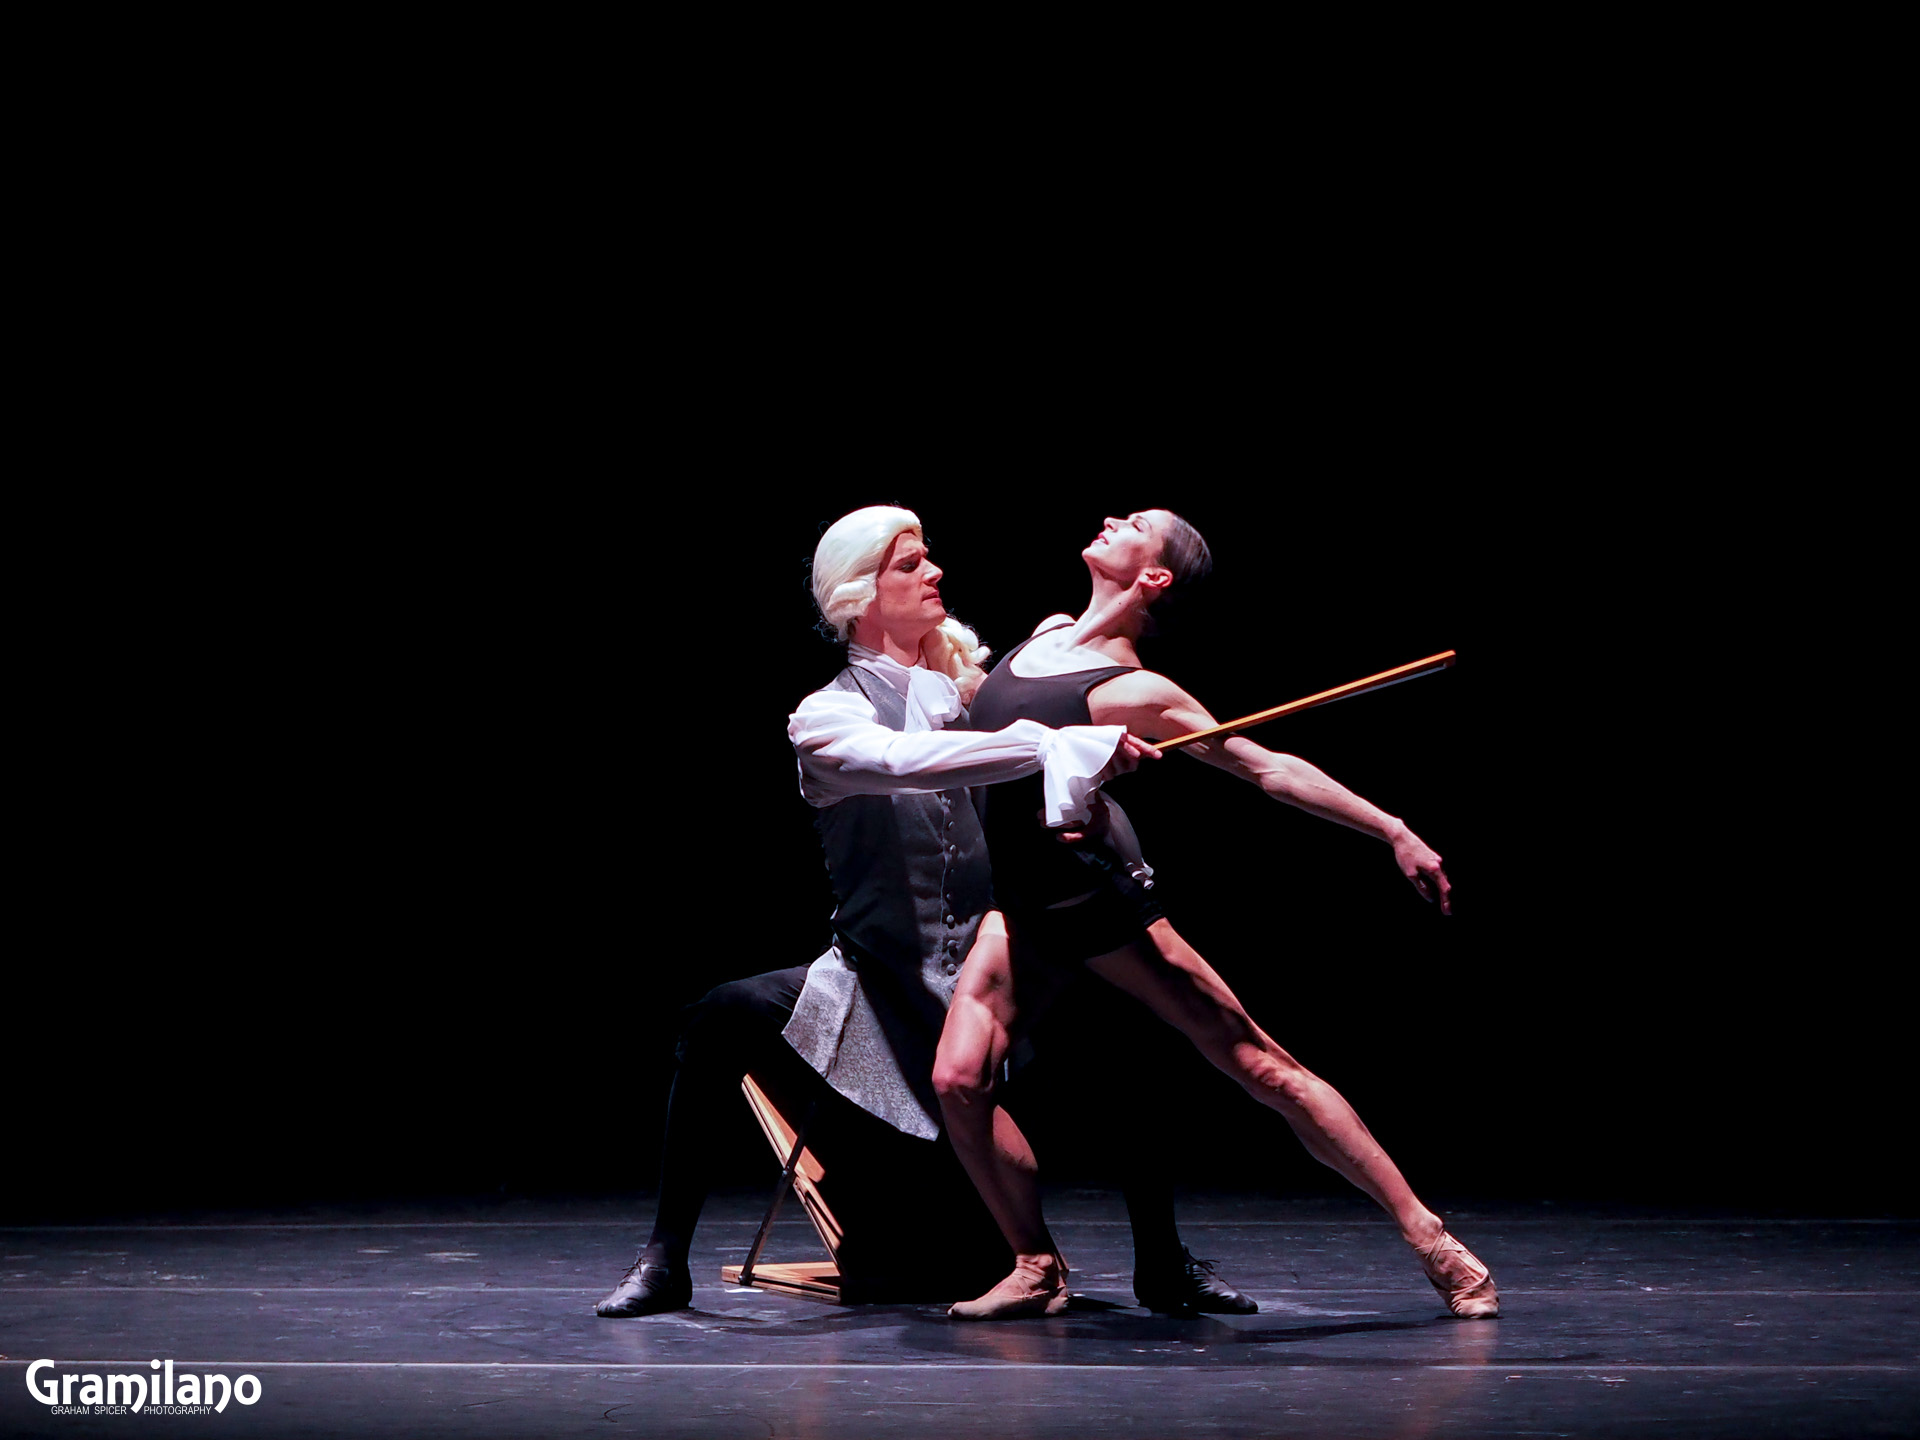 Polina Semionova and Dmitry Semionov in Nacho Duato's Cello